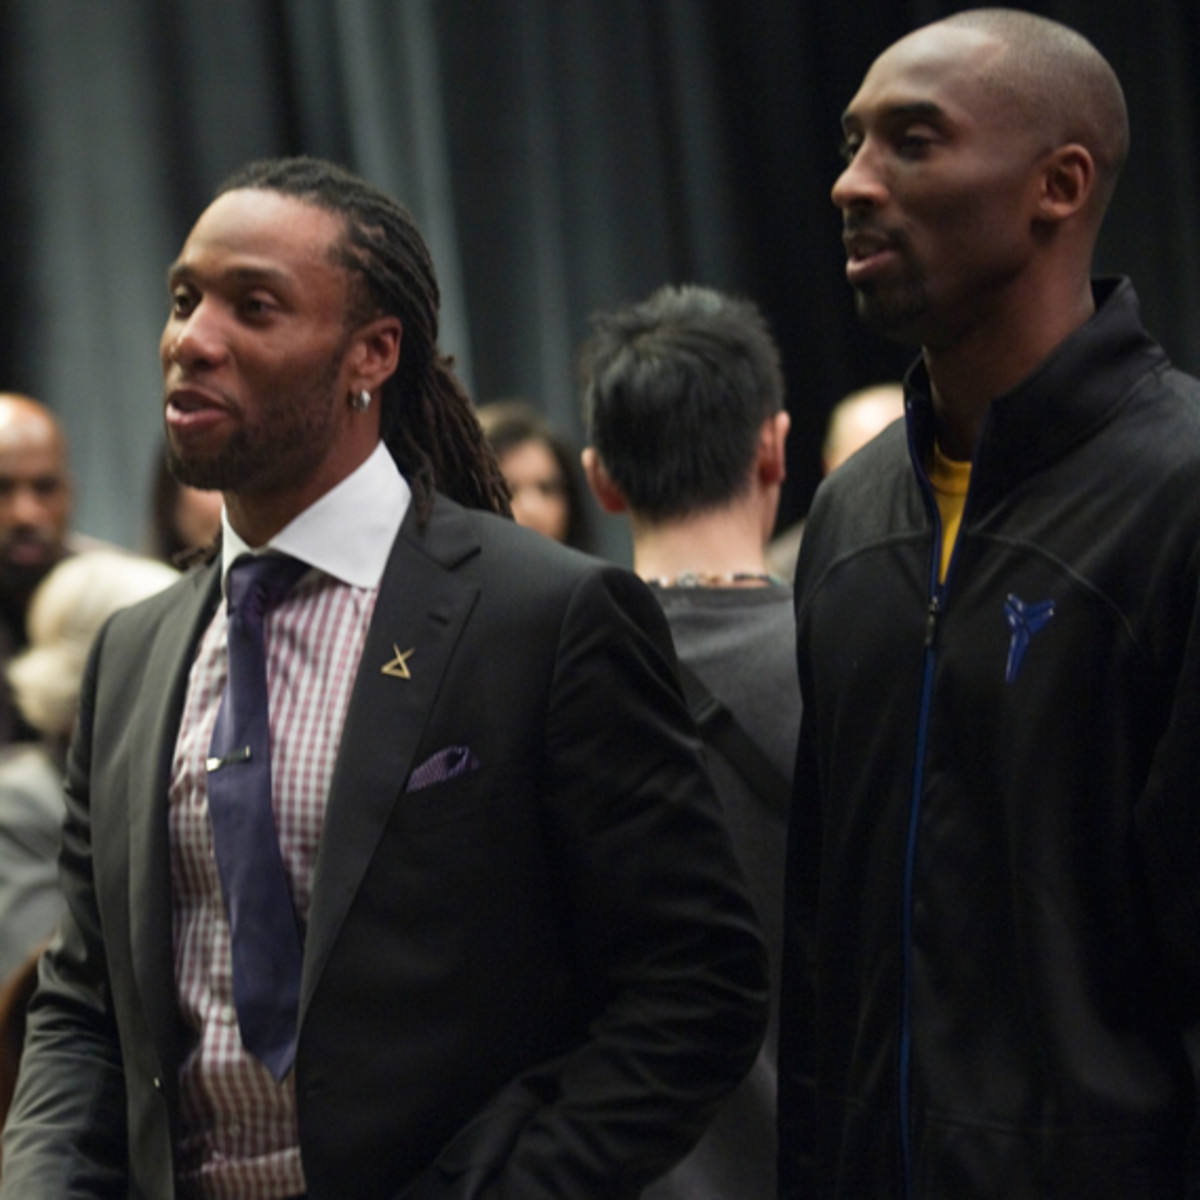 nike-kobesystem-success-for-the-successful-28